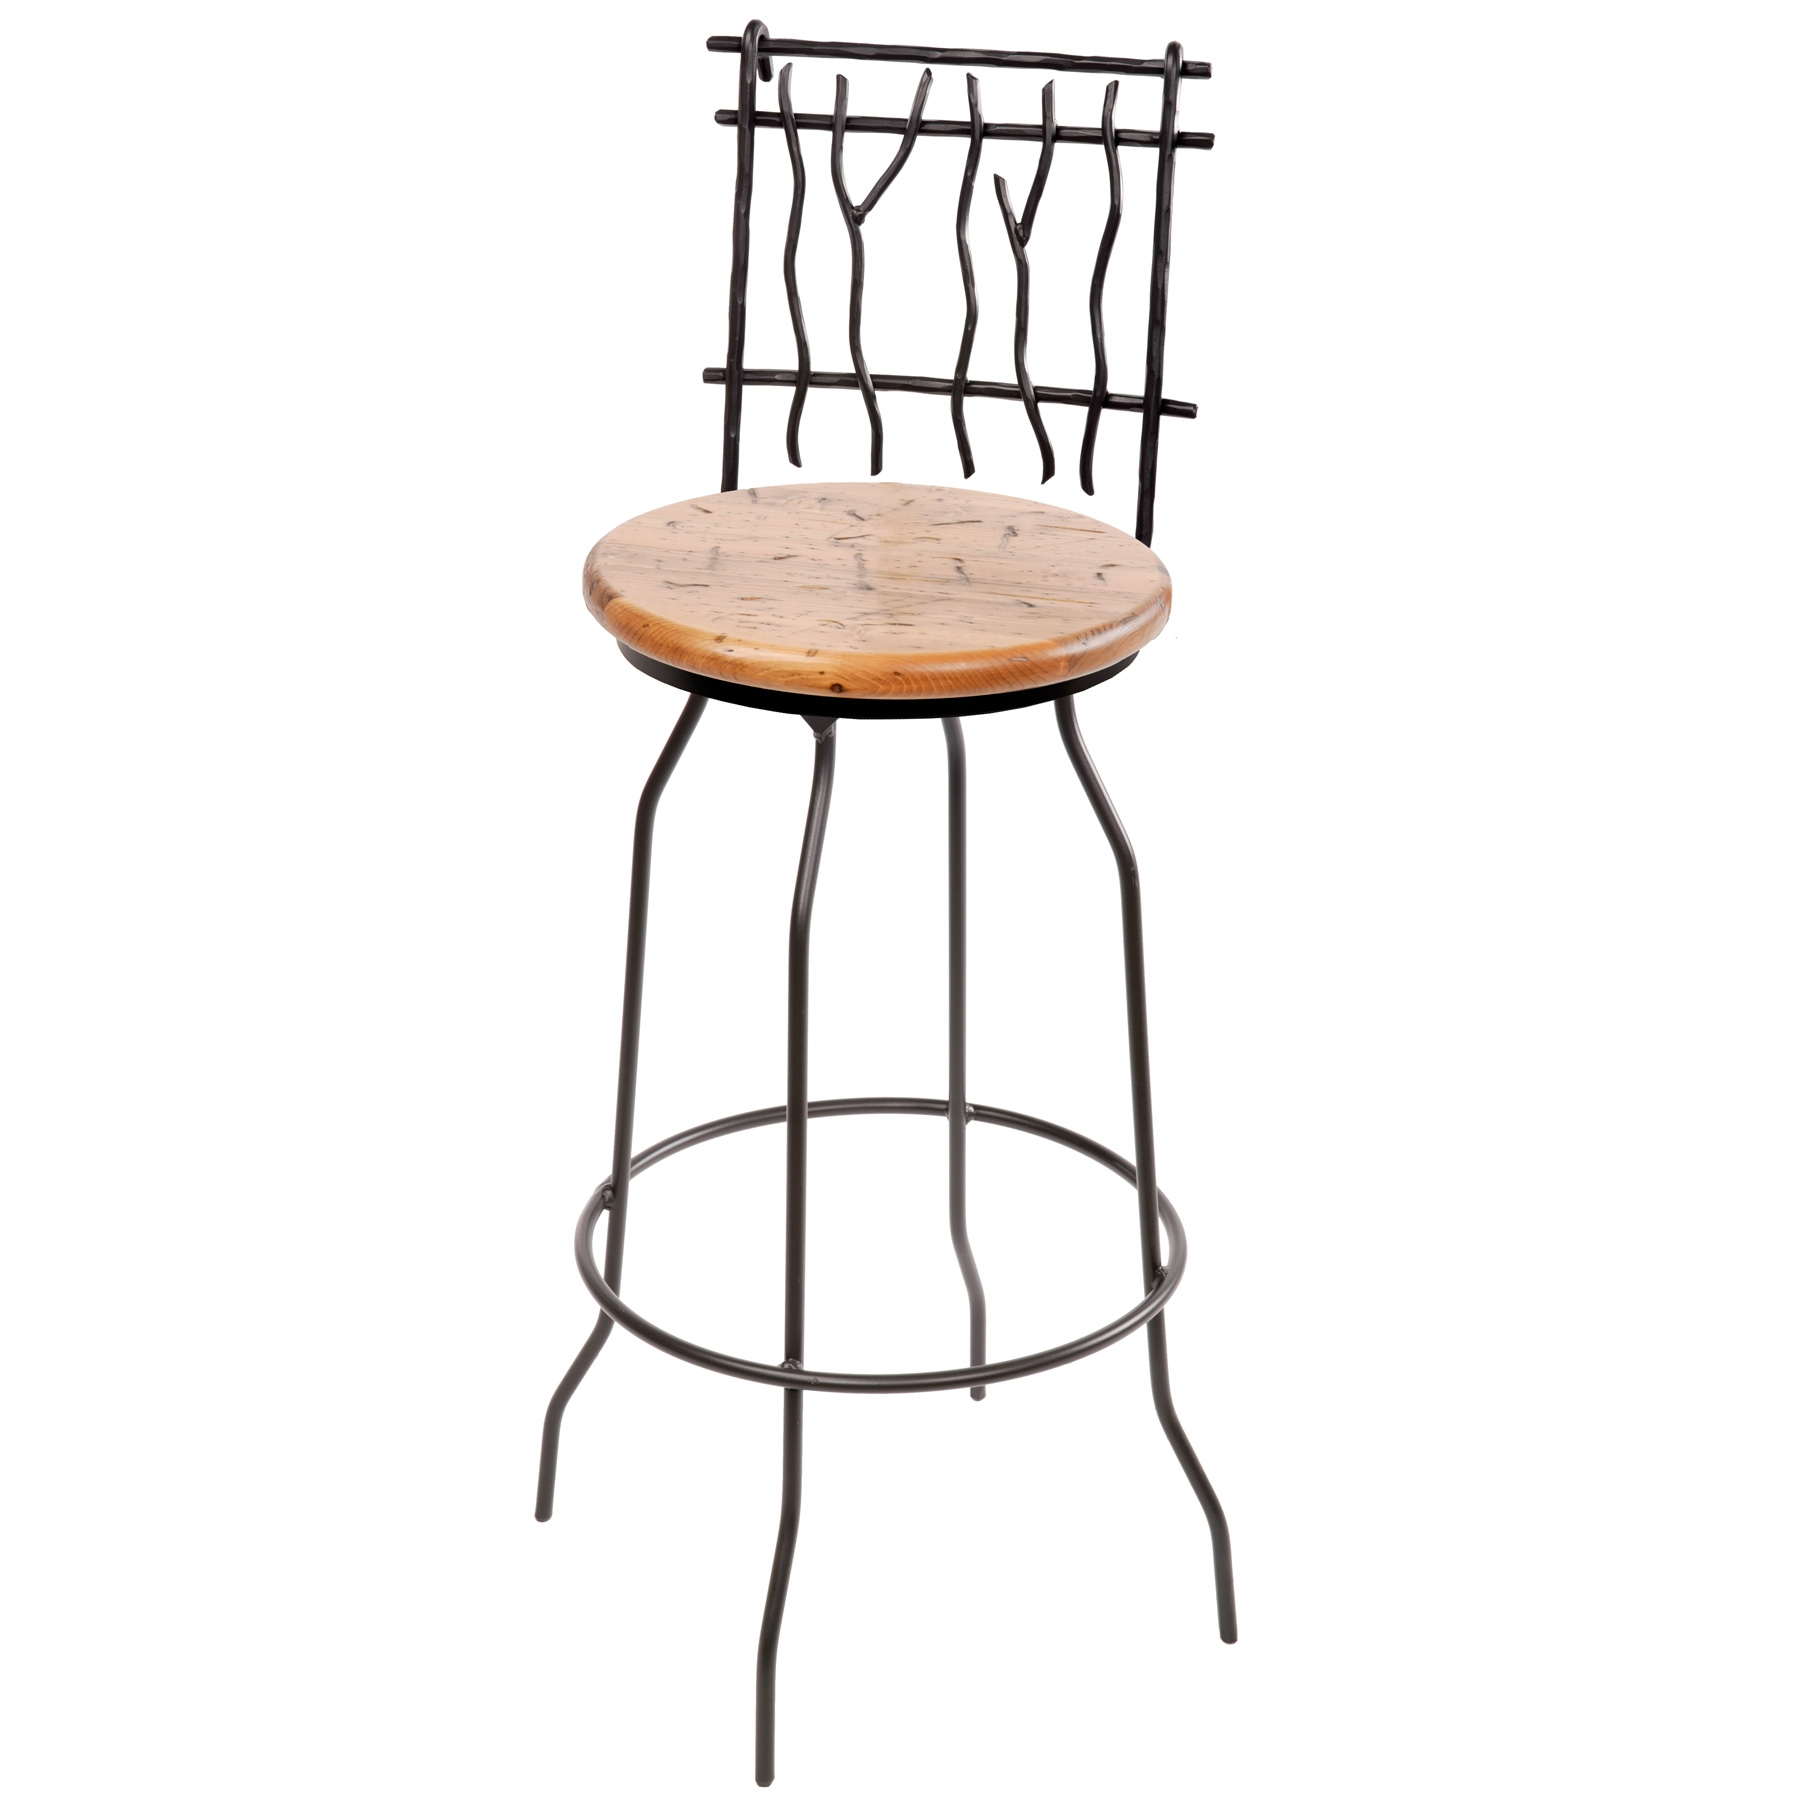 Rustic Wrought Iron Sassafras Counter Stool 25 in Seat  : sassafras counter stool 2 from www.timelesswroughtiron.com size 1800 x 1800 jpeg 289kB